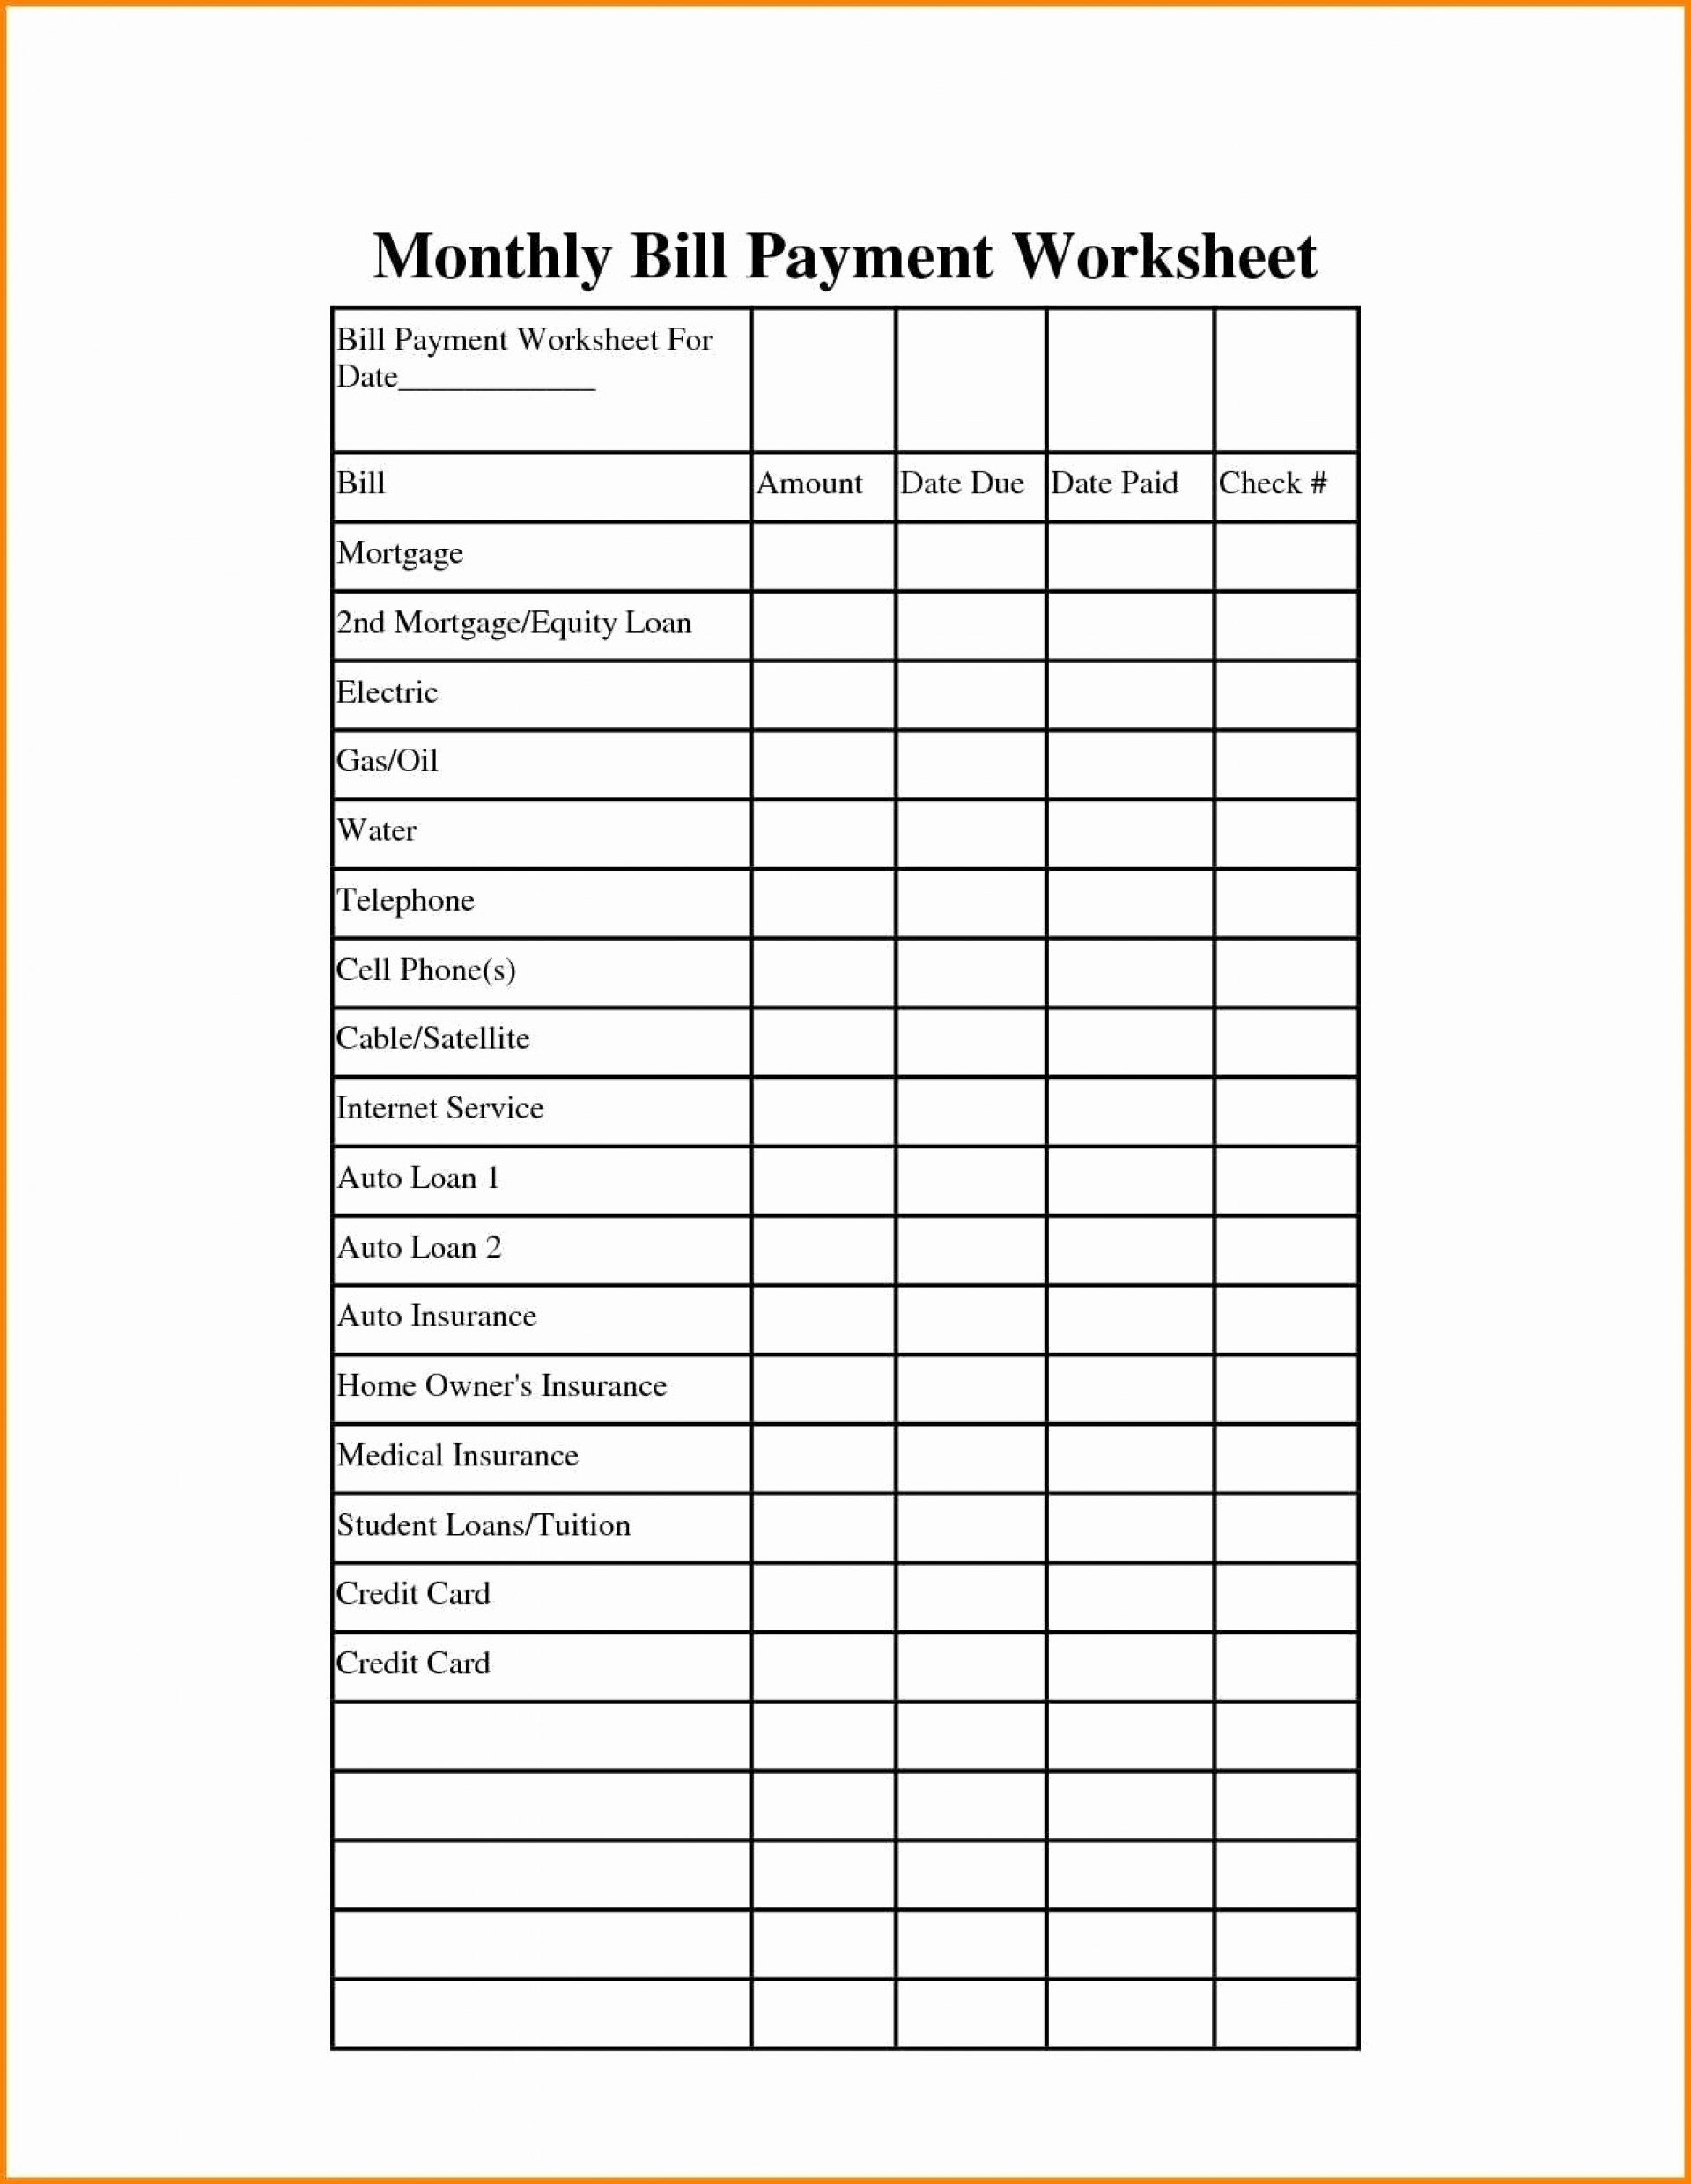 Bills Budget Spreadsheet Bill Monthly Payment Family-Blank Printable Monthly Bill Pay Worksheet